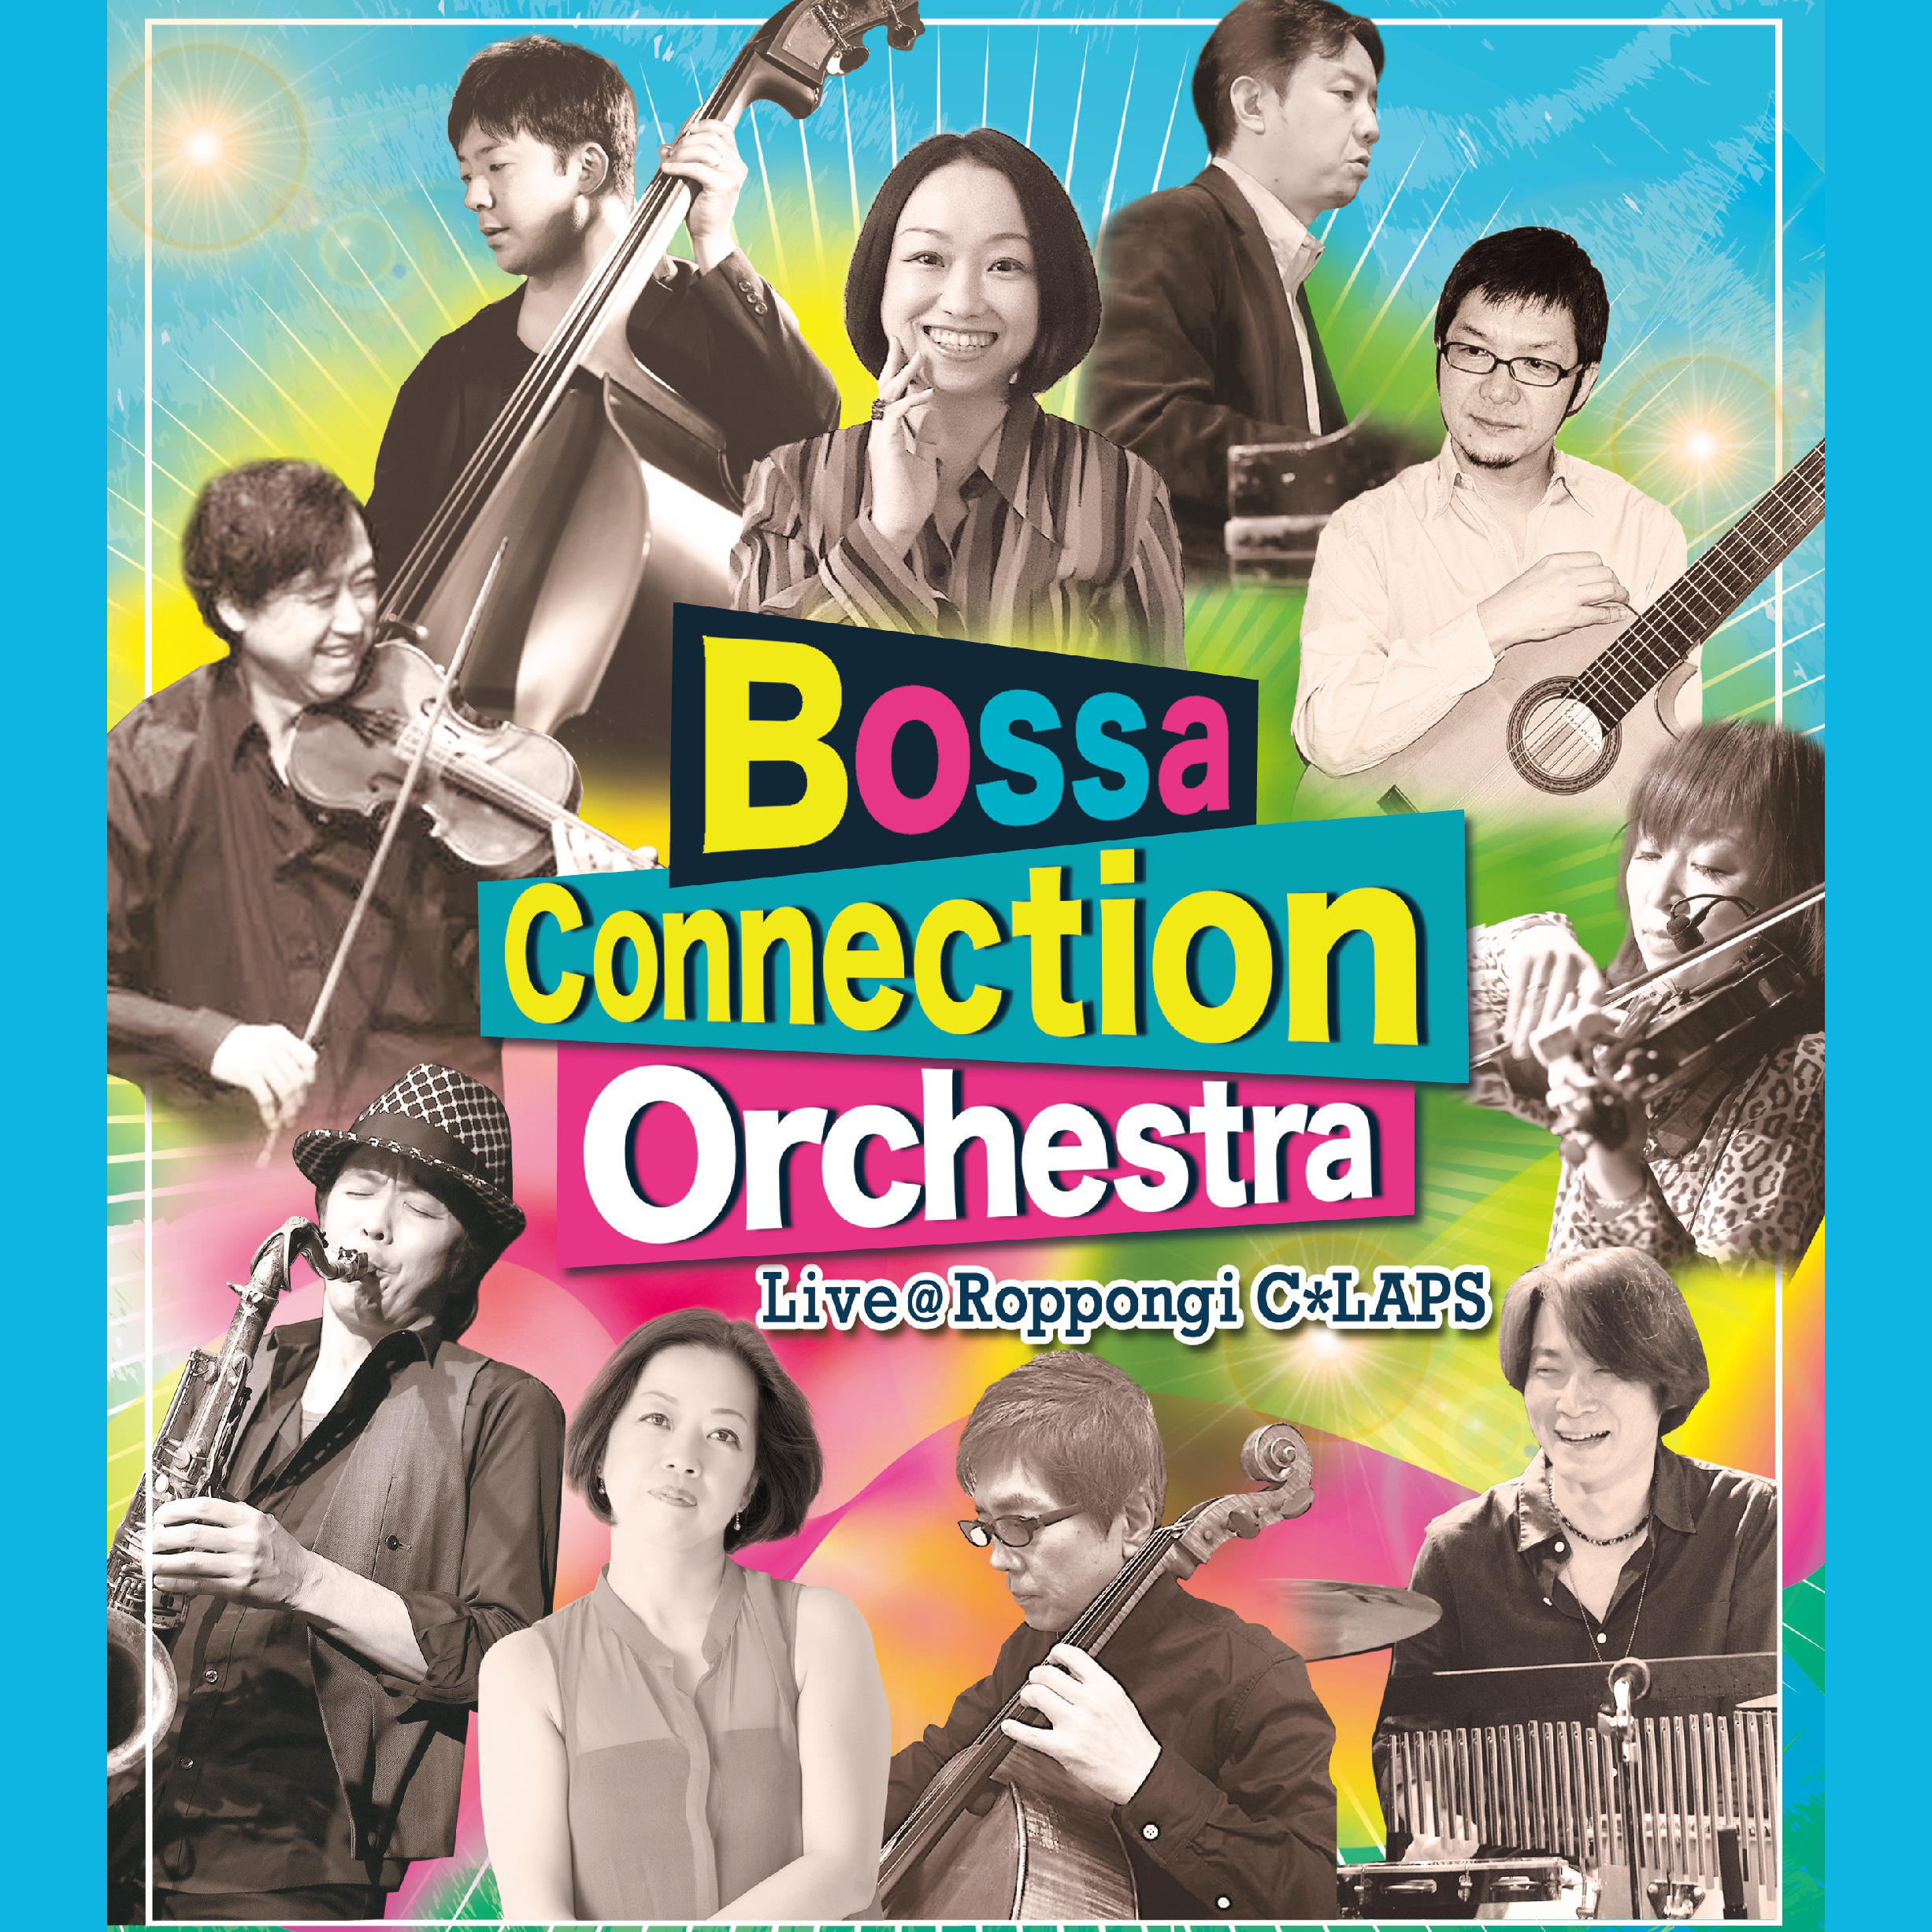 Bossa Connection Orchestra